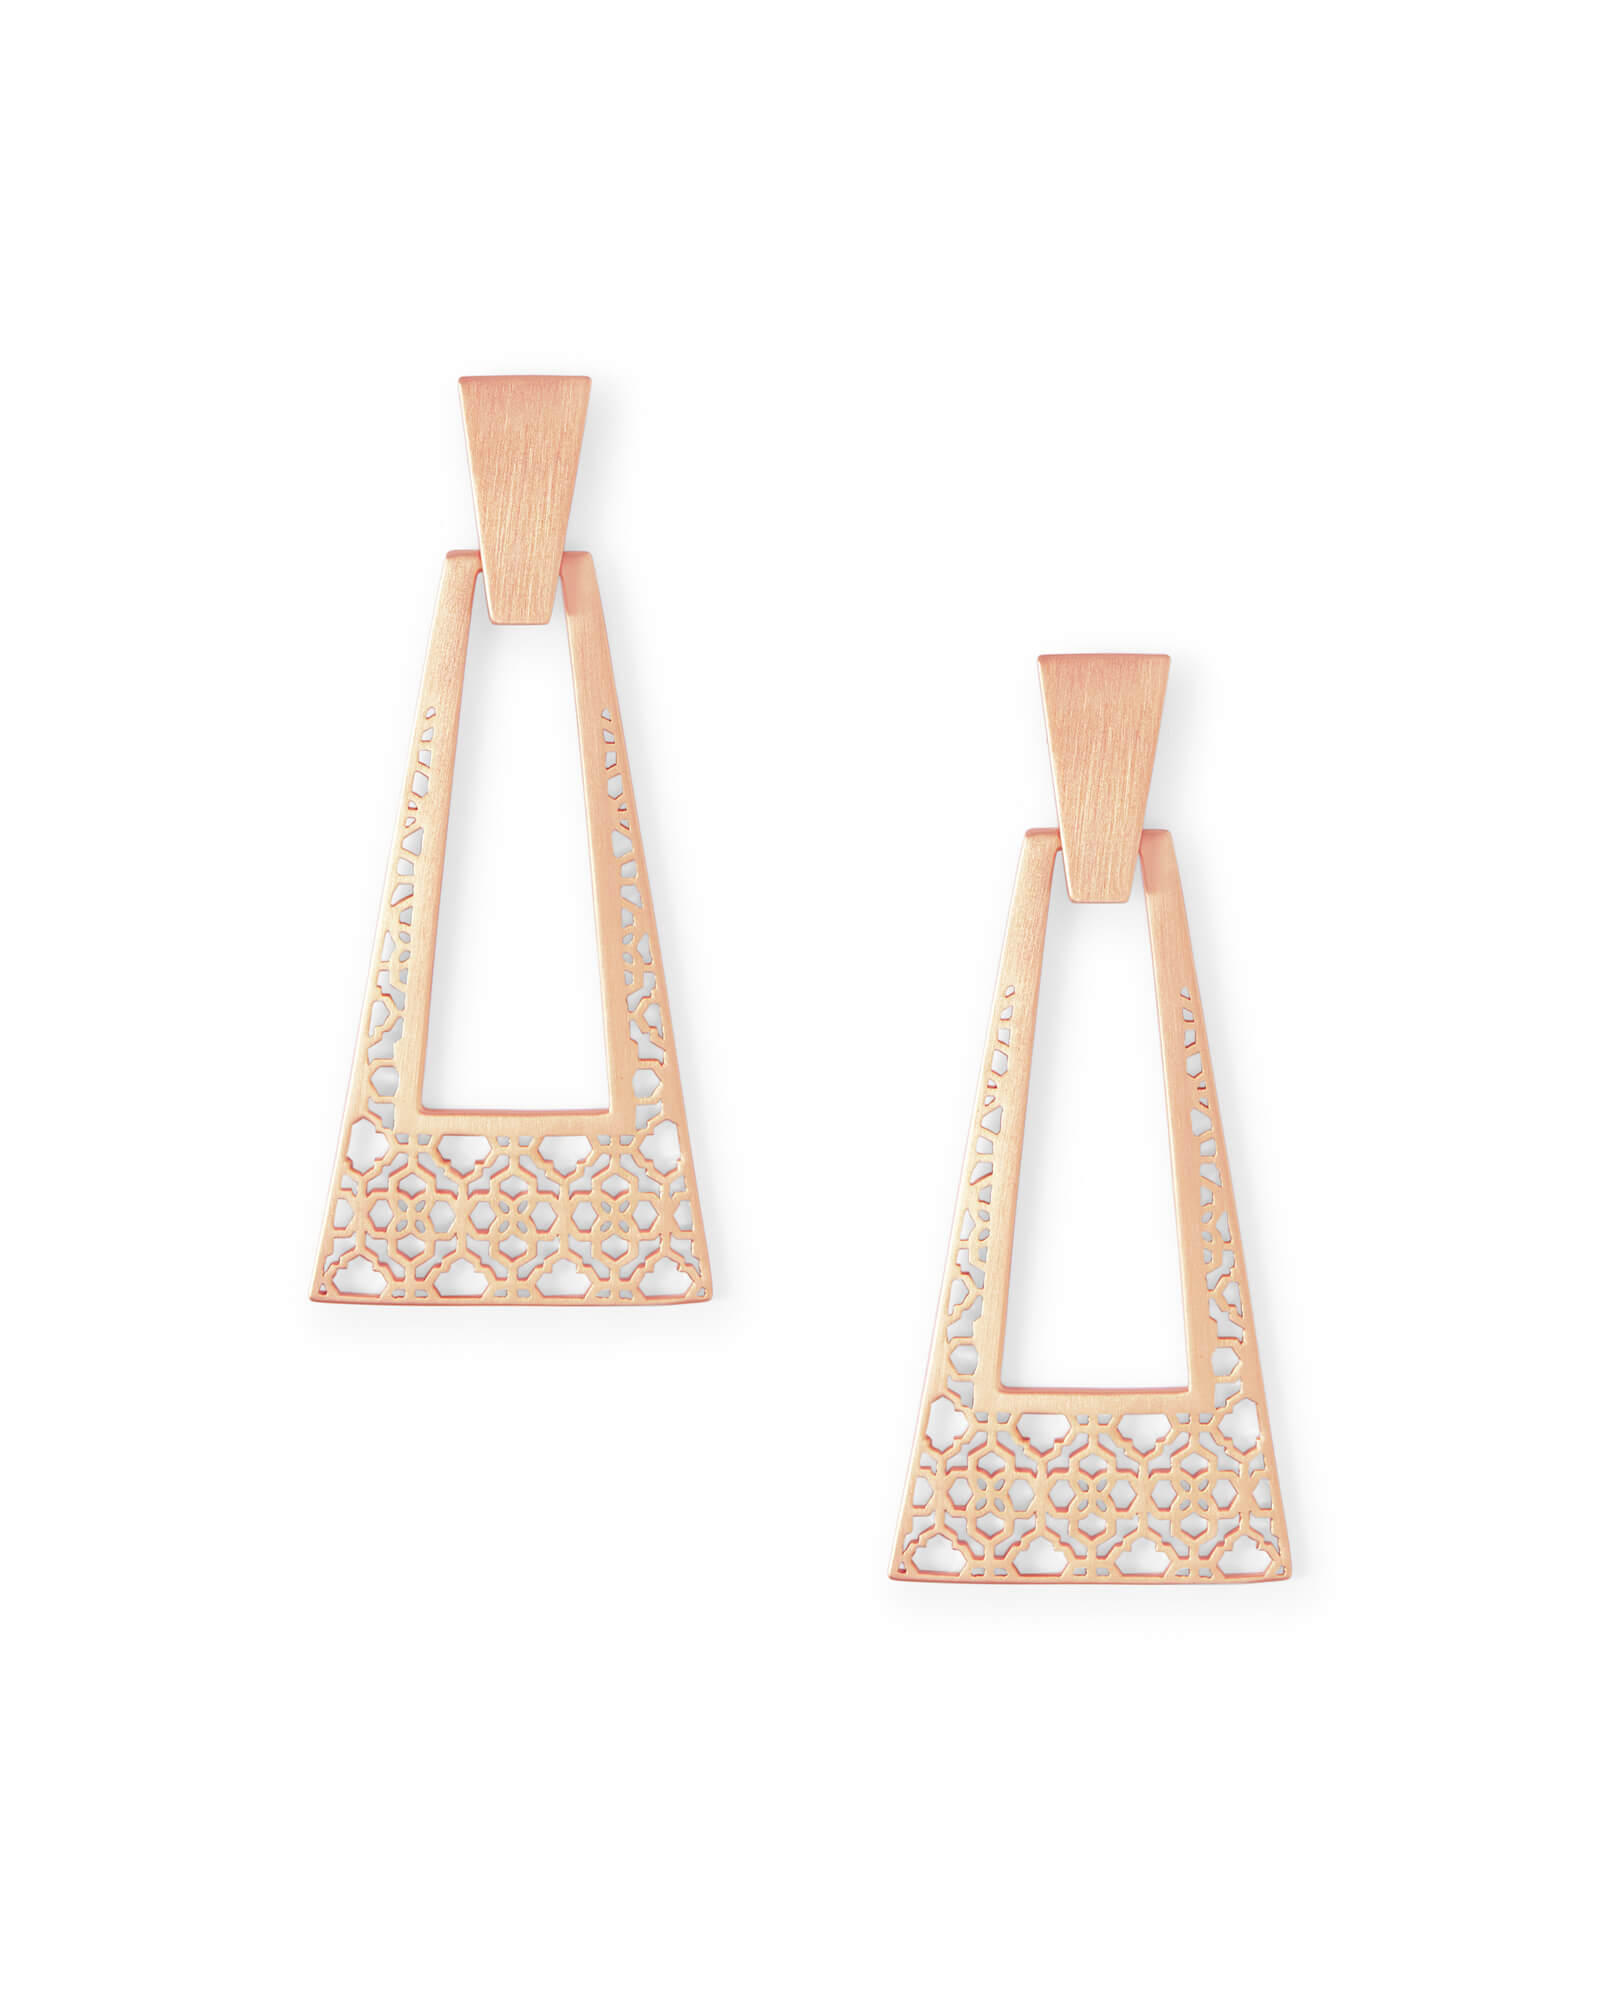 Kase Rose Gold Statement Earrings in Rose Gold Filigree